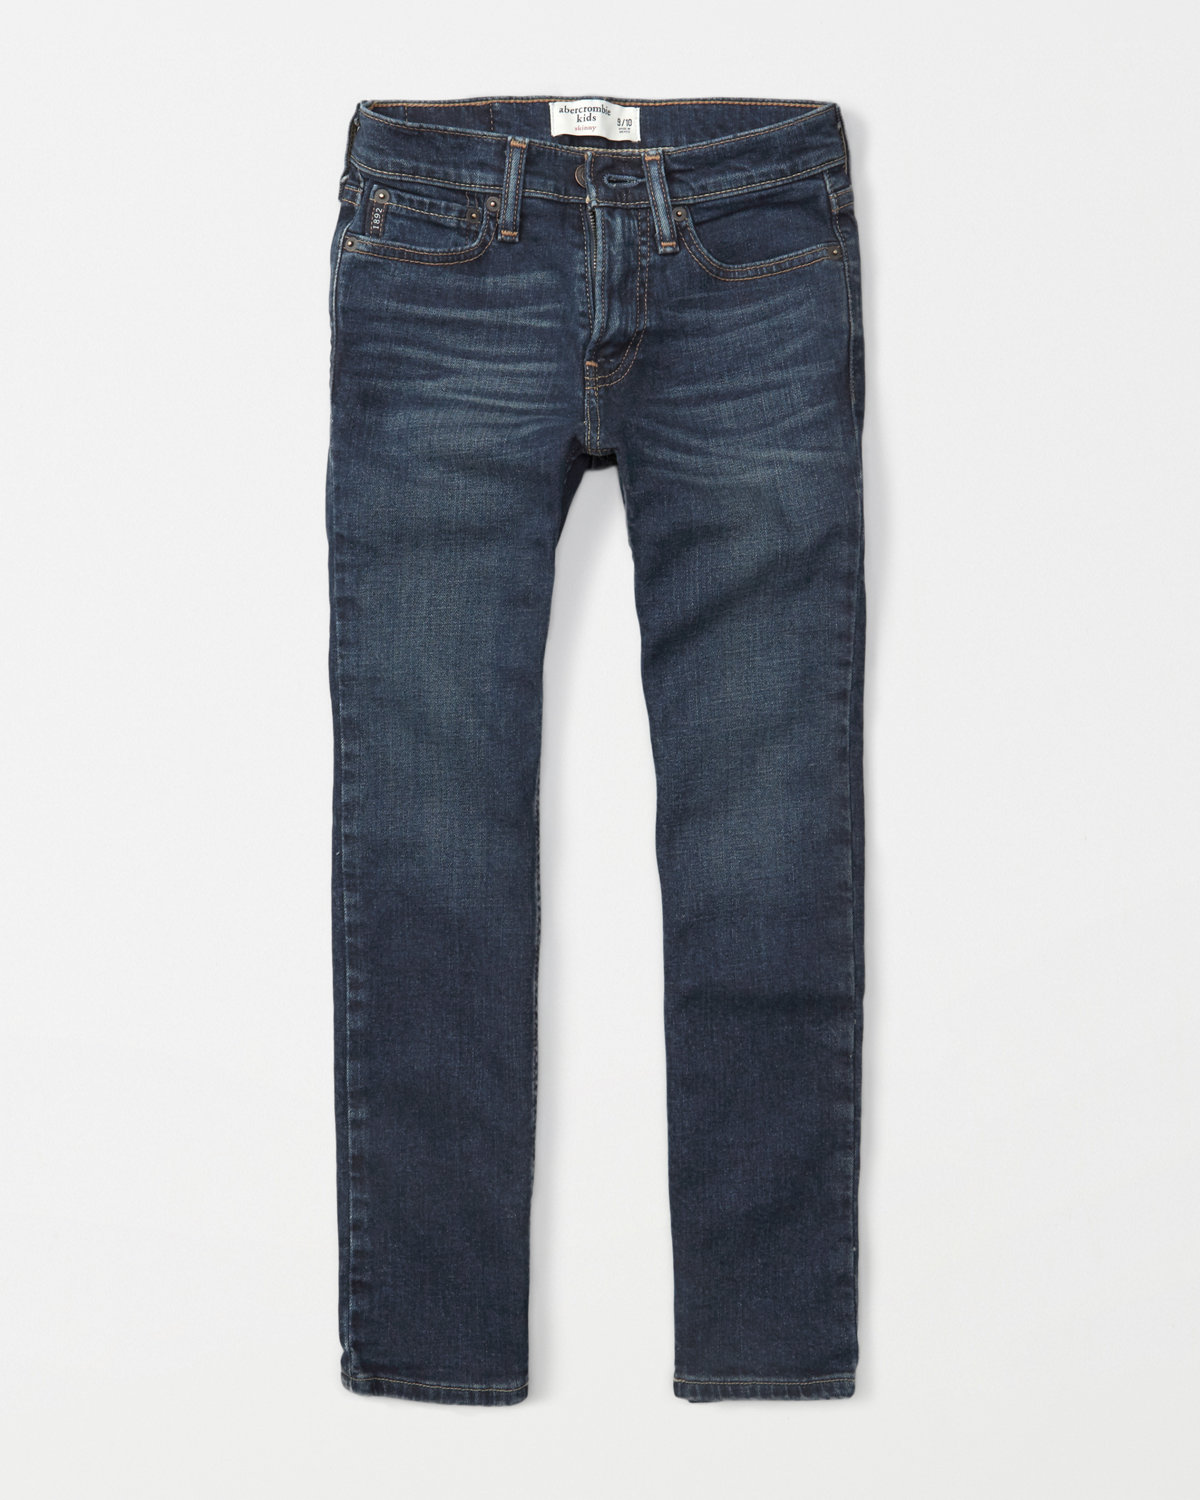 FREE SHIPPING AVAILABLE! Shop erlinelomantkgs831.ga and save on Boys Jeans.